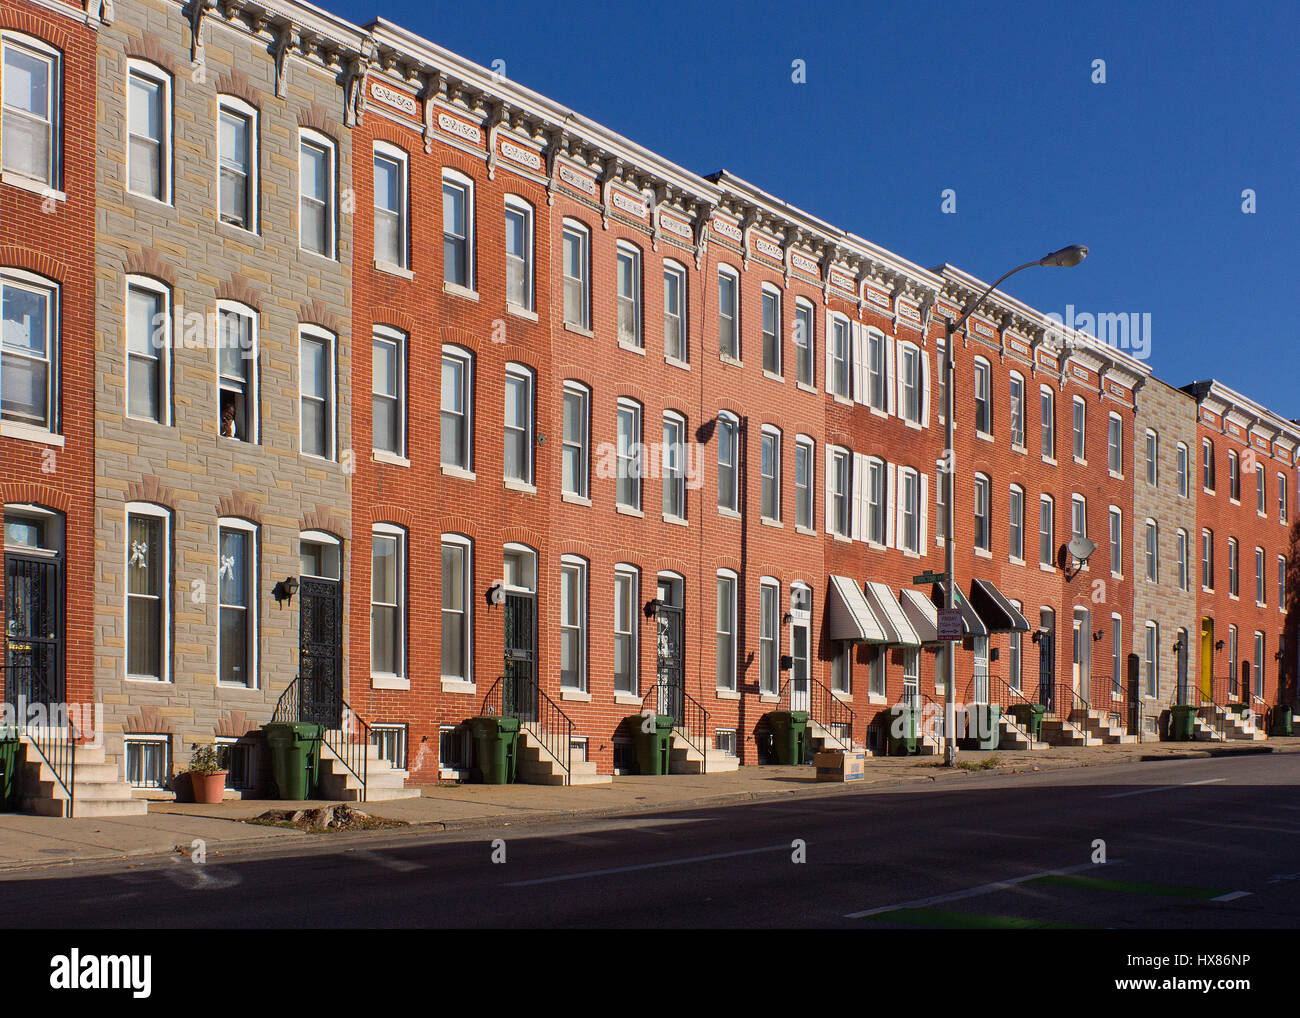 Baltimore rowhouses on Biddle Street. - Stock Image